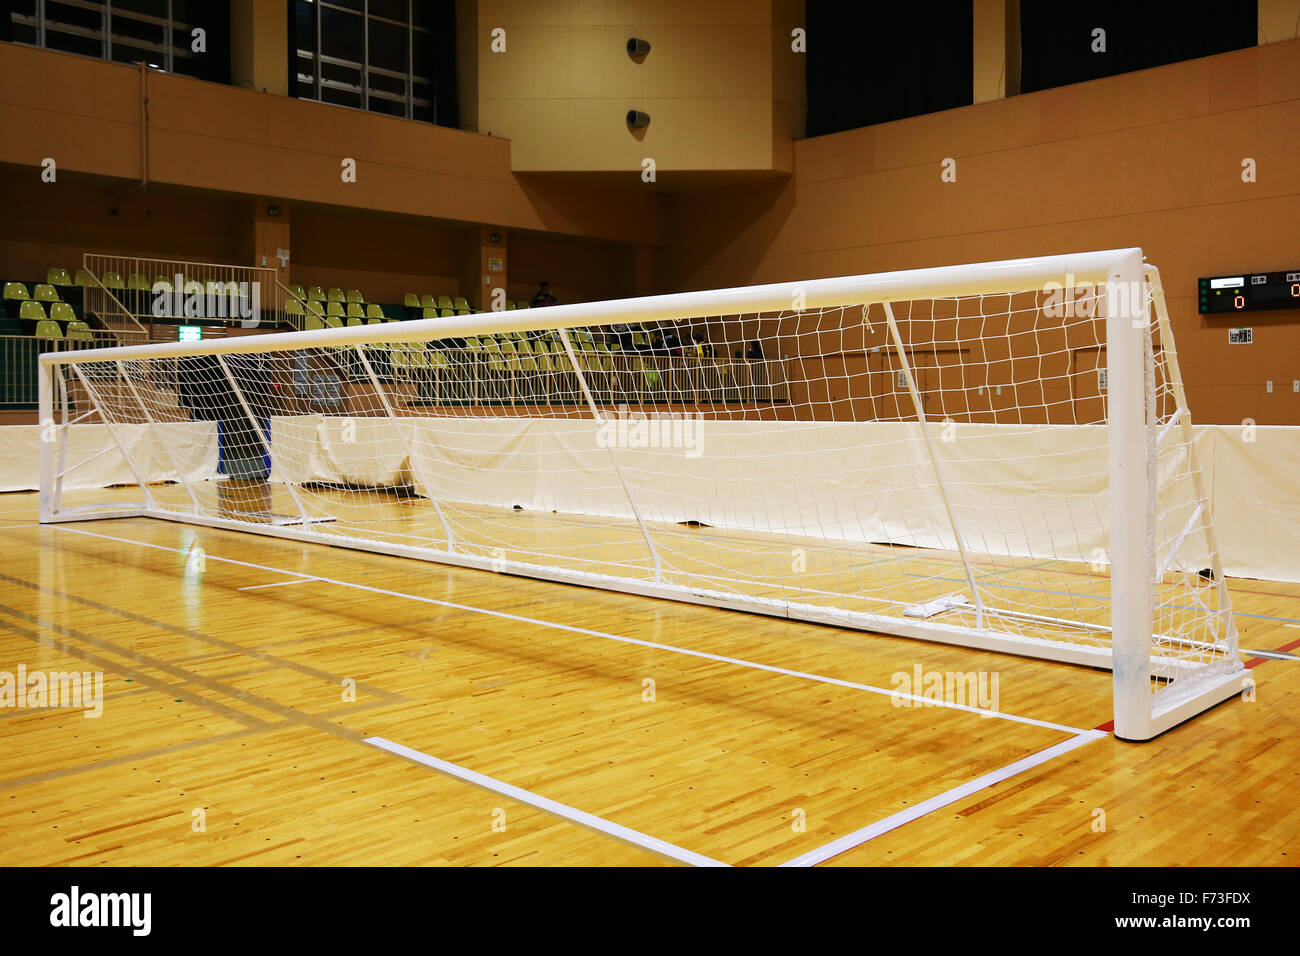 Goal for Goalball NOVEMBER 21, 2015 - Goalball : 2015 Japan Goalball Championships at Ohme City general gymnasium, Tokyo, Japan. © Shingo Ito/AFLO SPORT/Alamy Live News Stock Photo